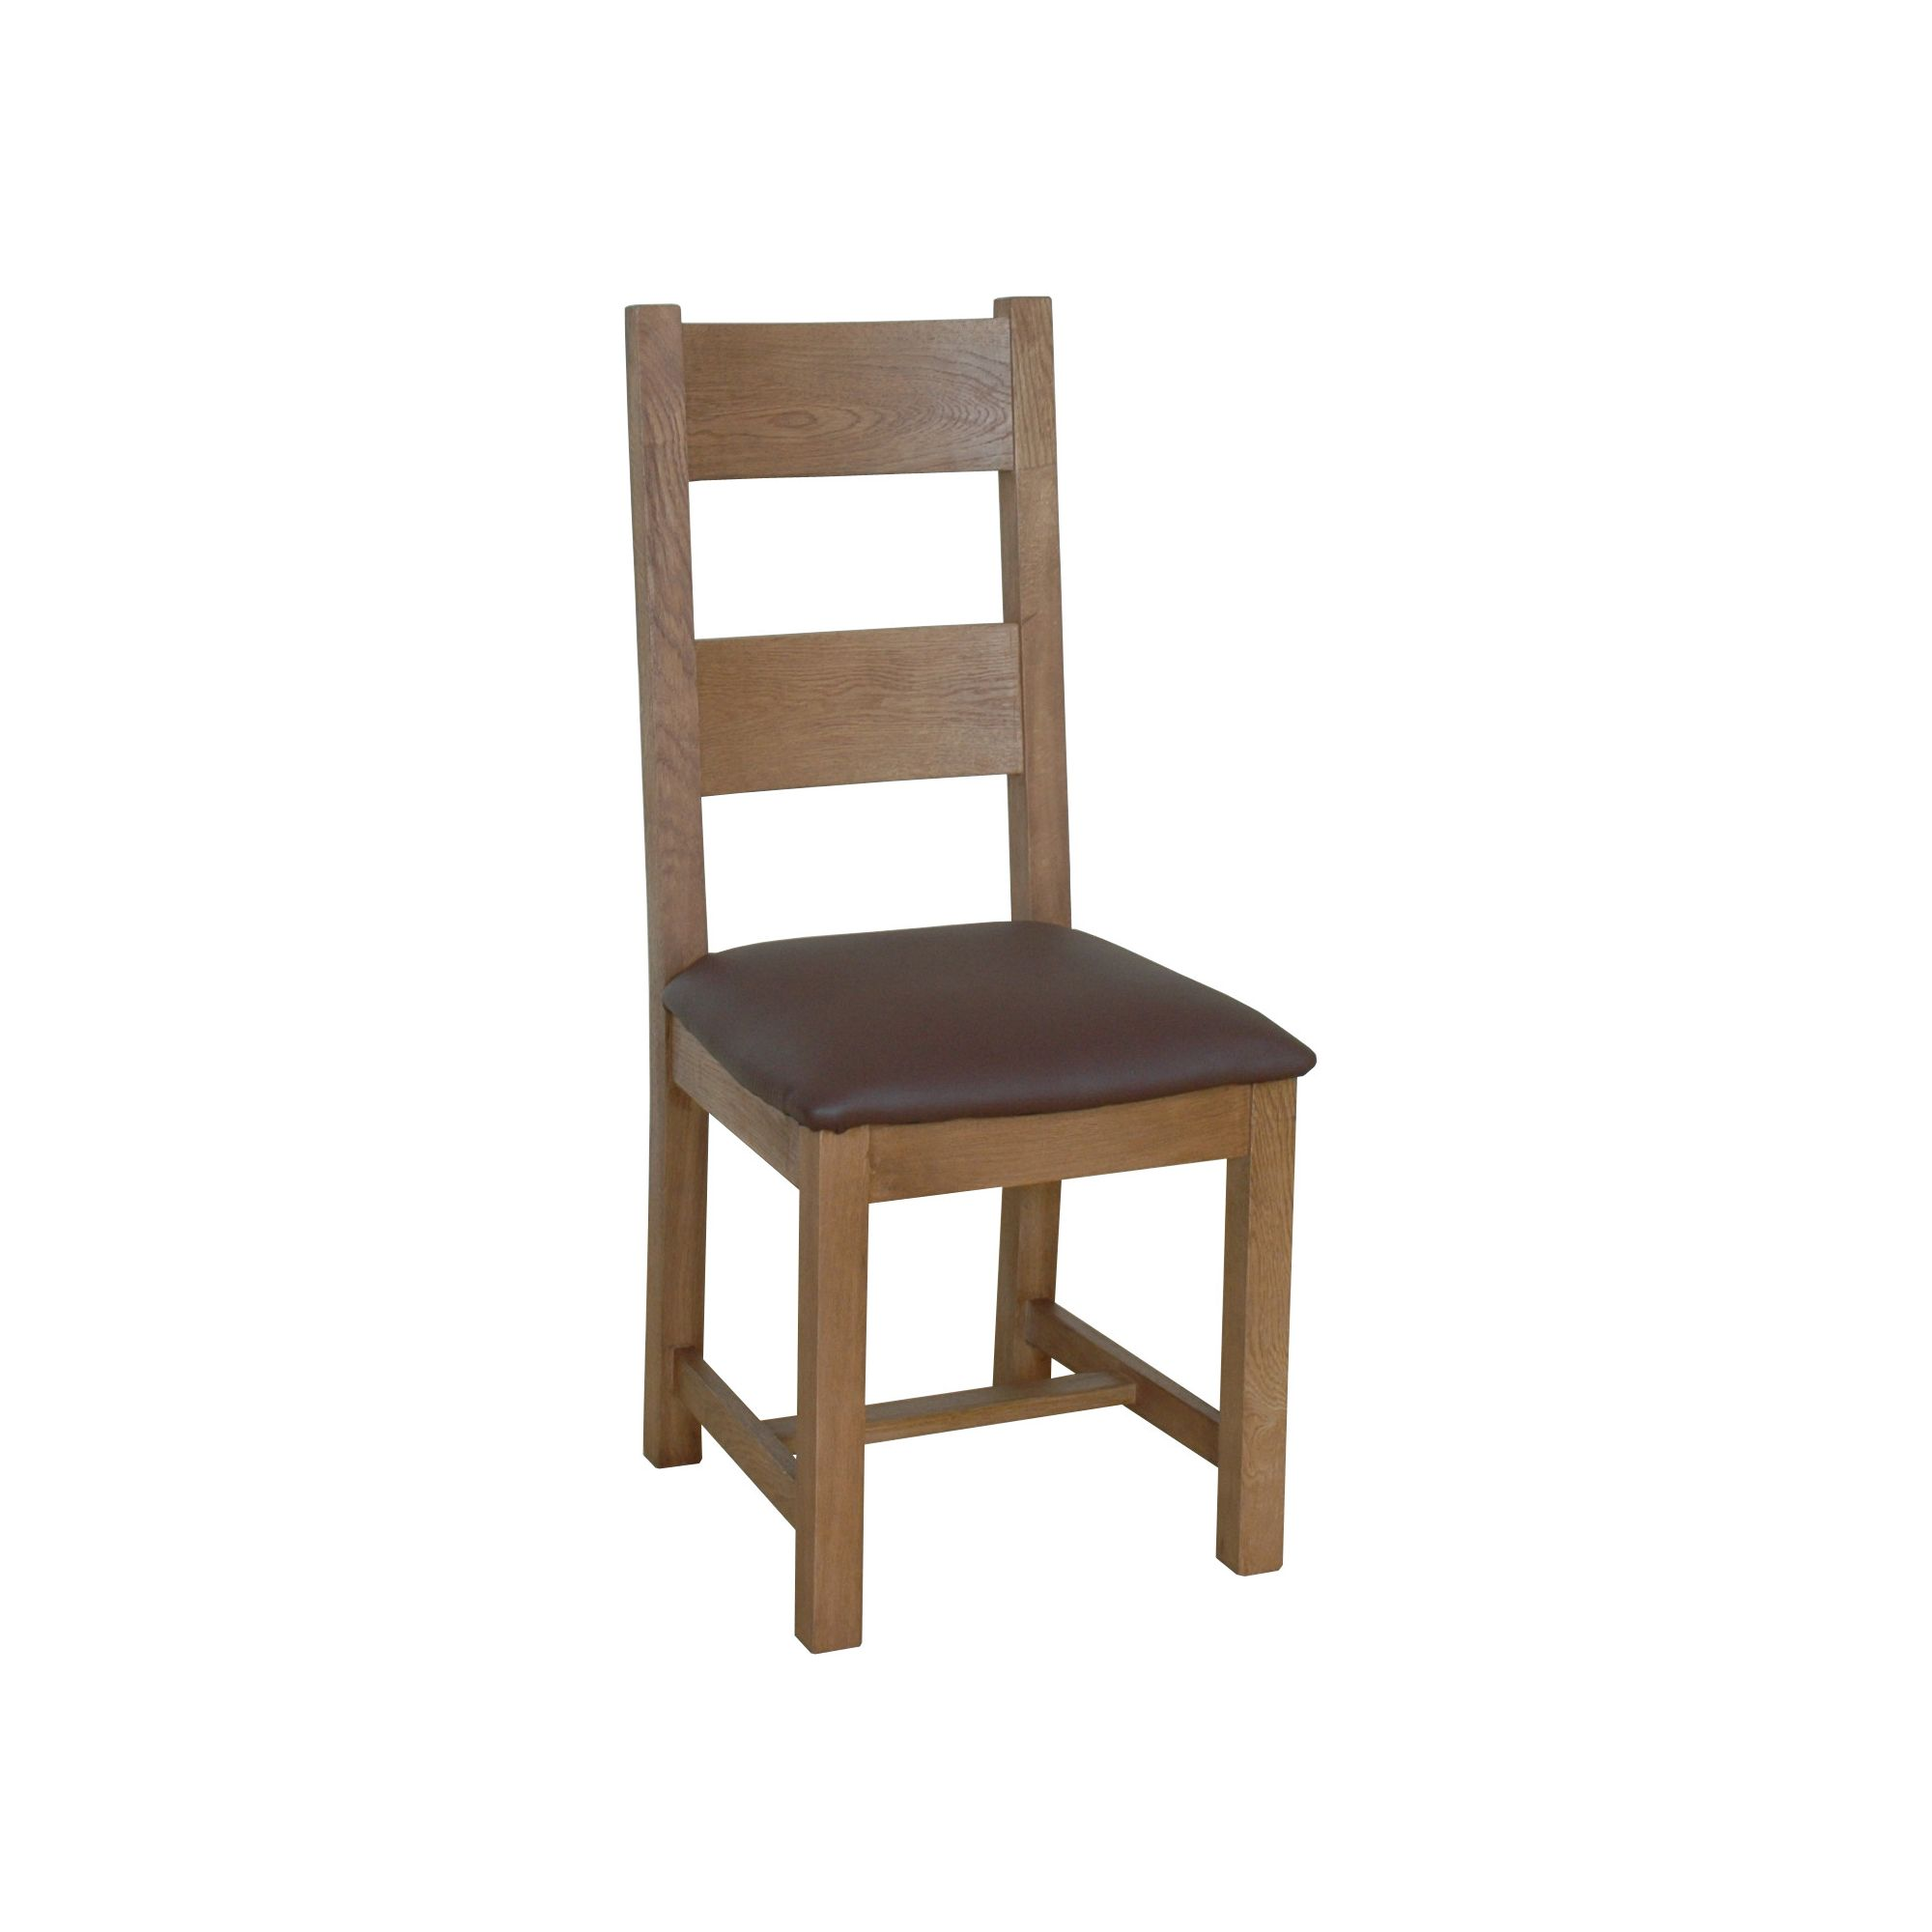 Wiseaction Florence Dining Chair with Dark Brown Leather Seat